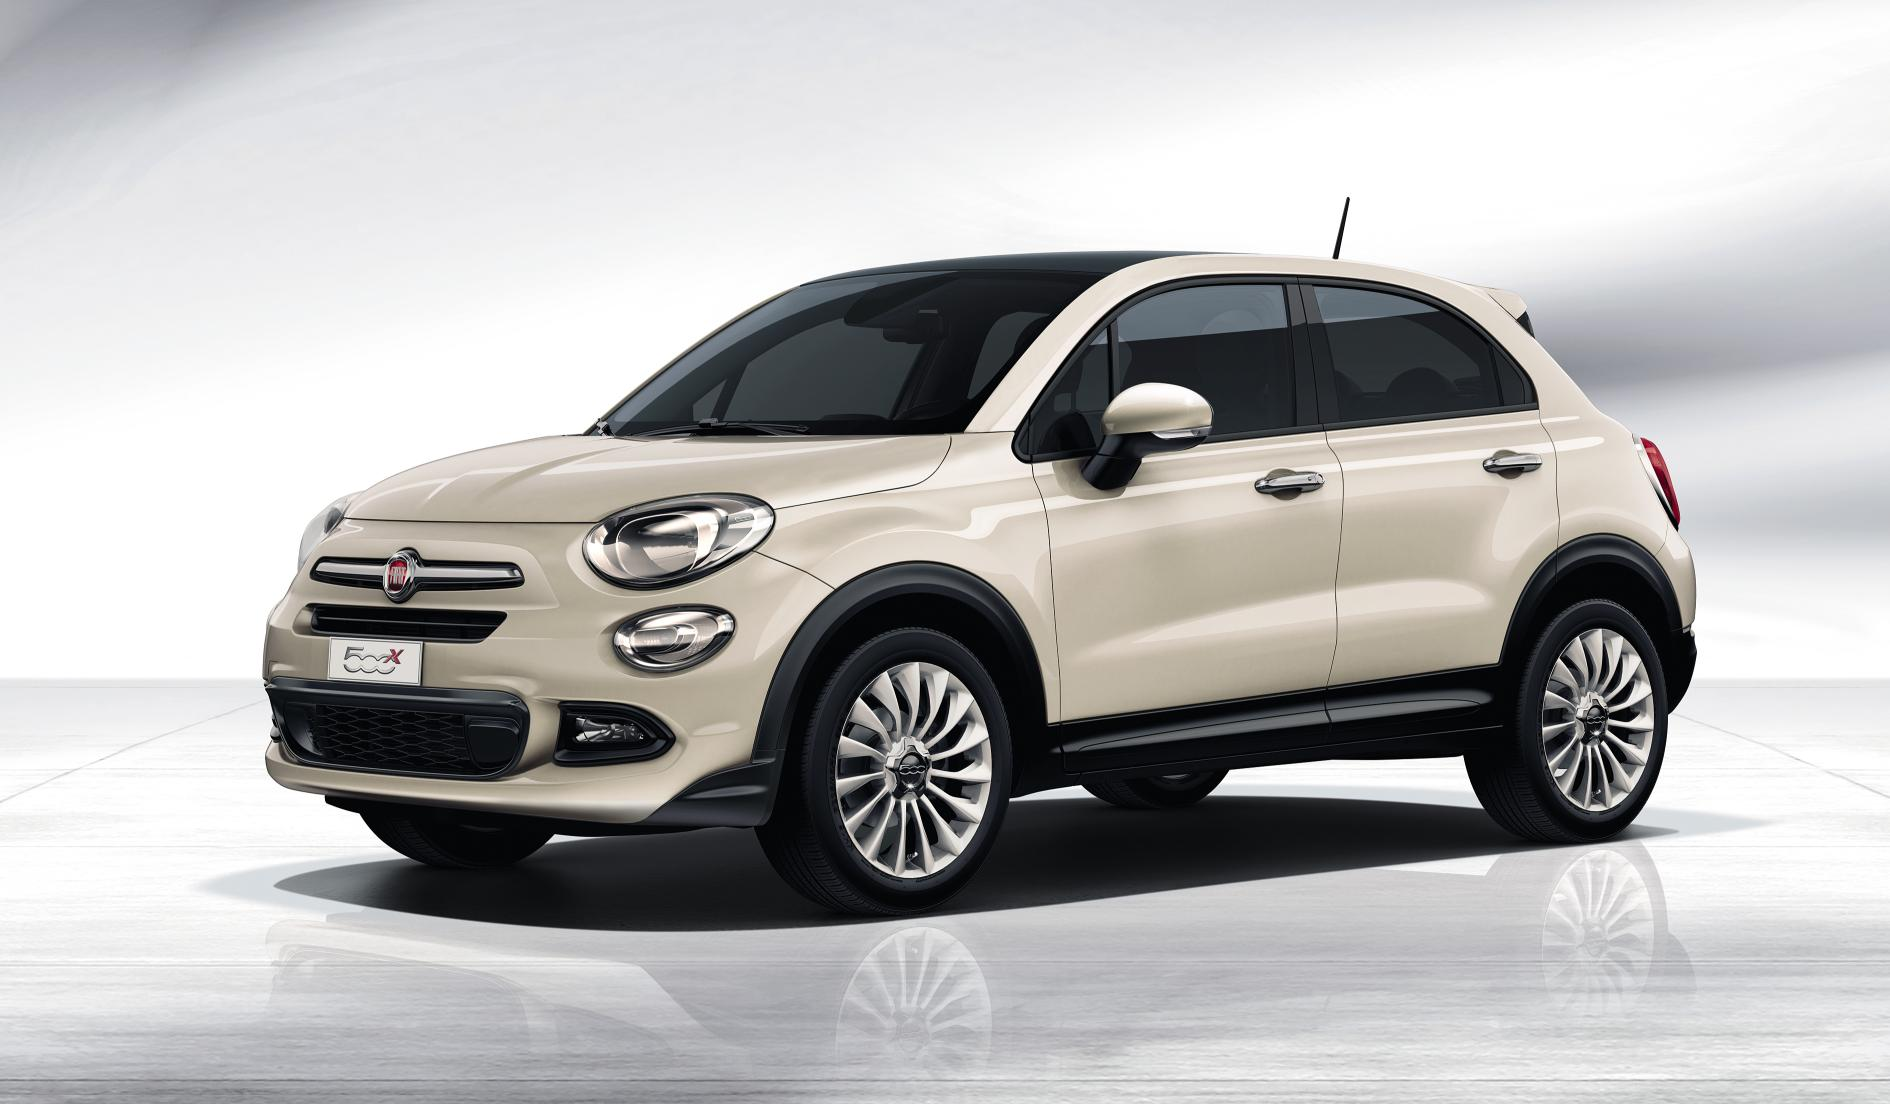 fiat 500x photo gallery car gallery suv crossovers autocar india. Black Bedroom Furniture Sets. Home Design Ideas